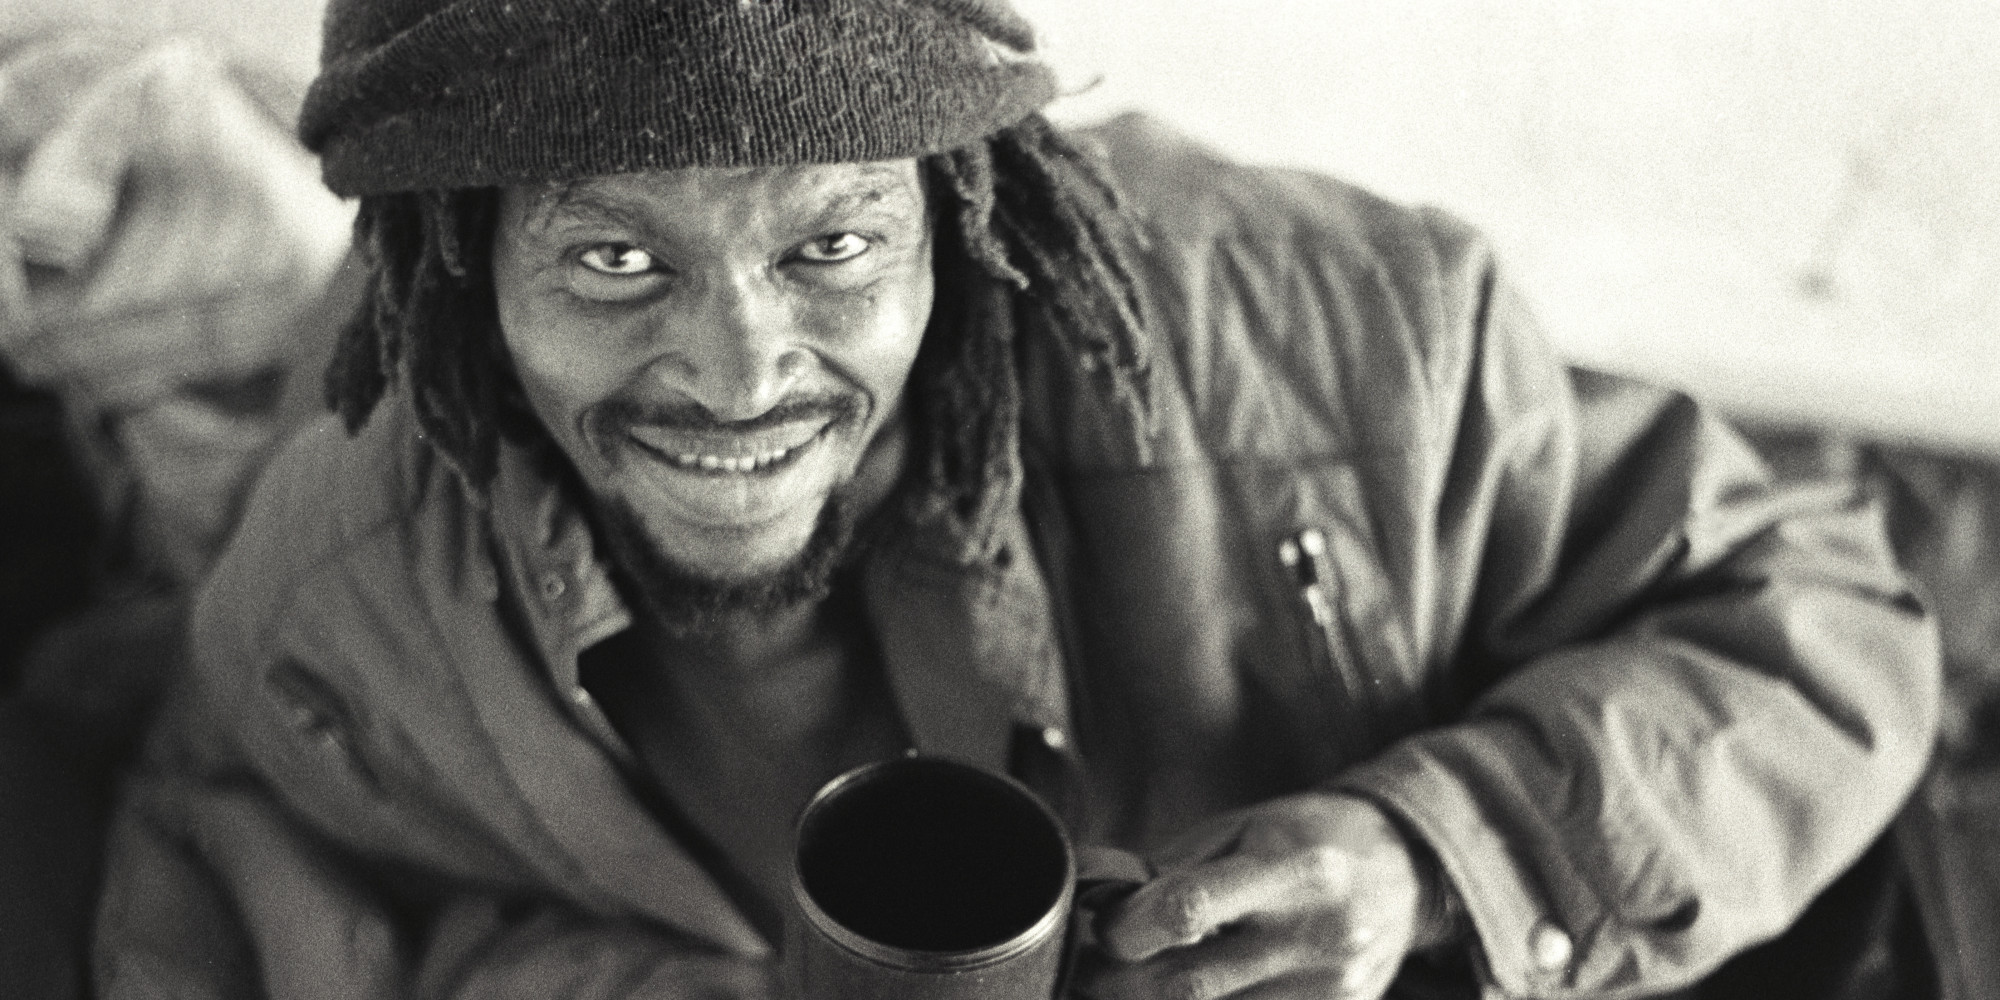 HOMELESS-BLACK-MAN-facebook jpgHappy Homeless Man